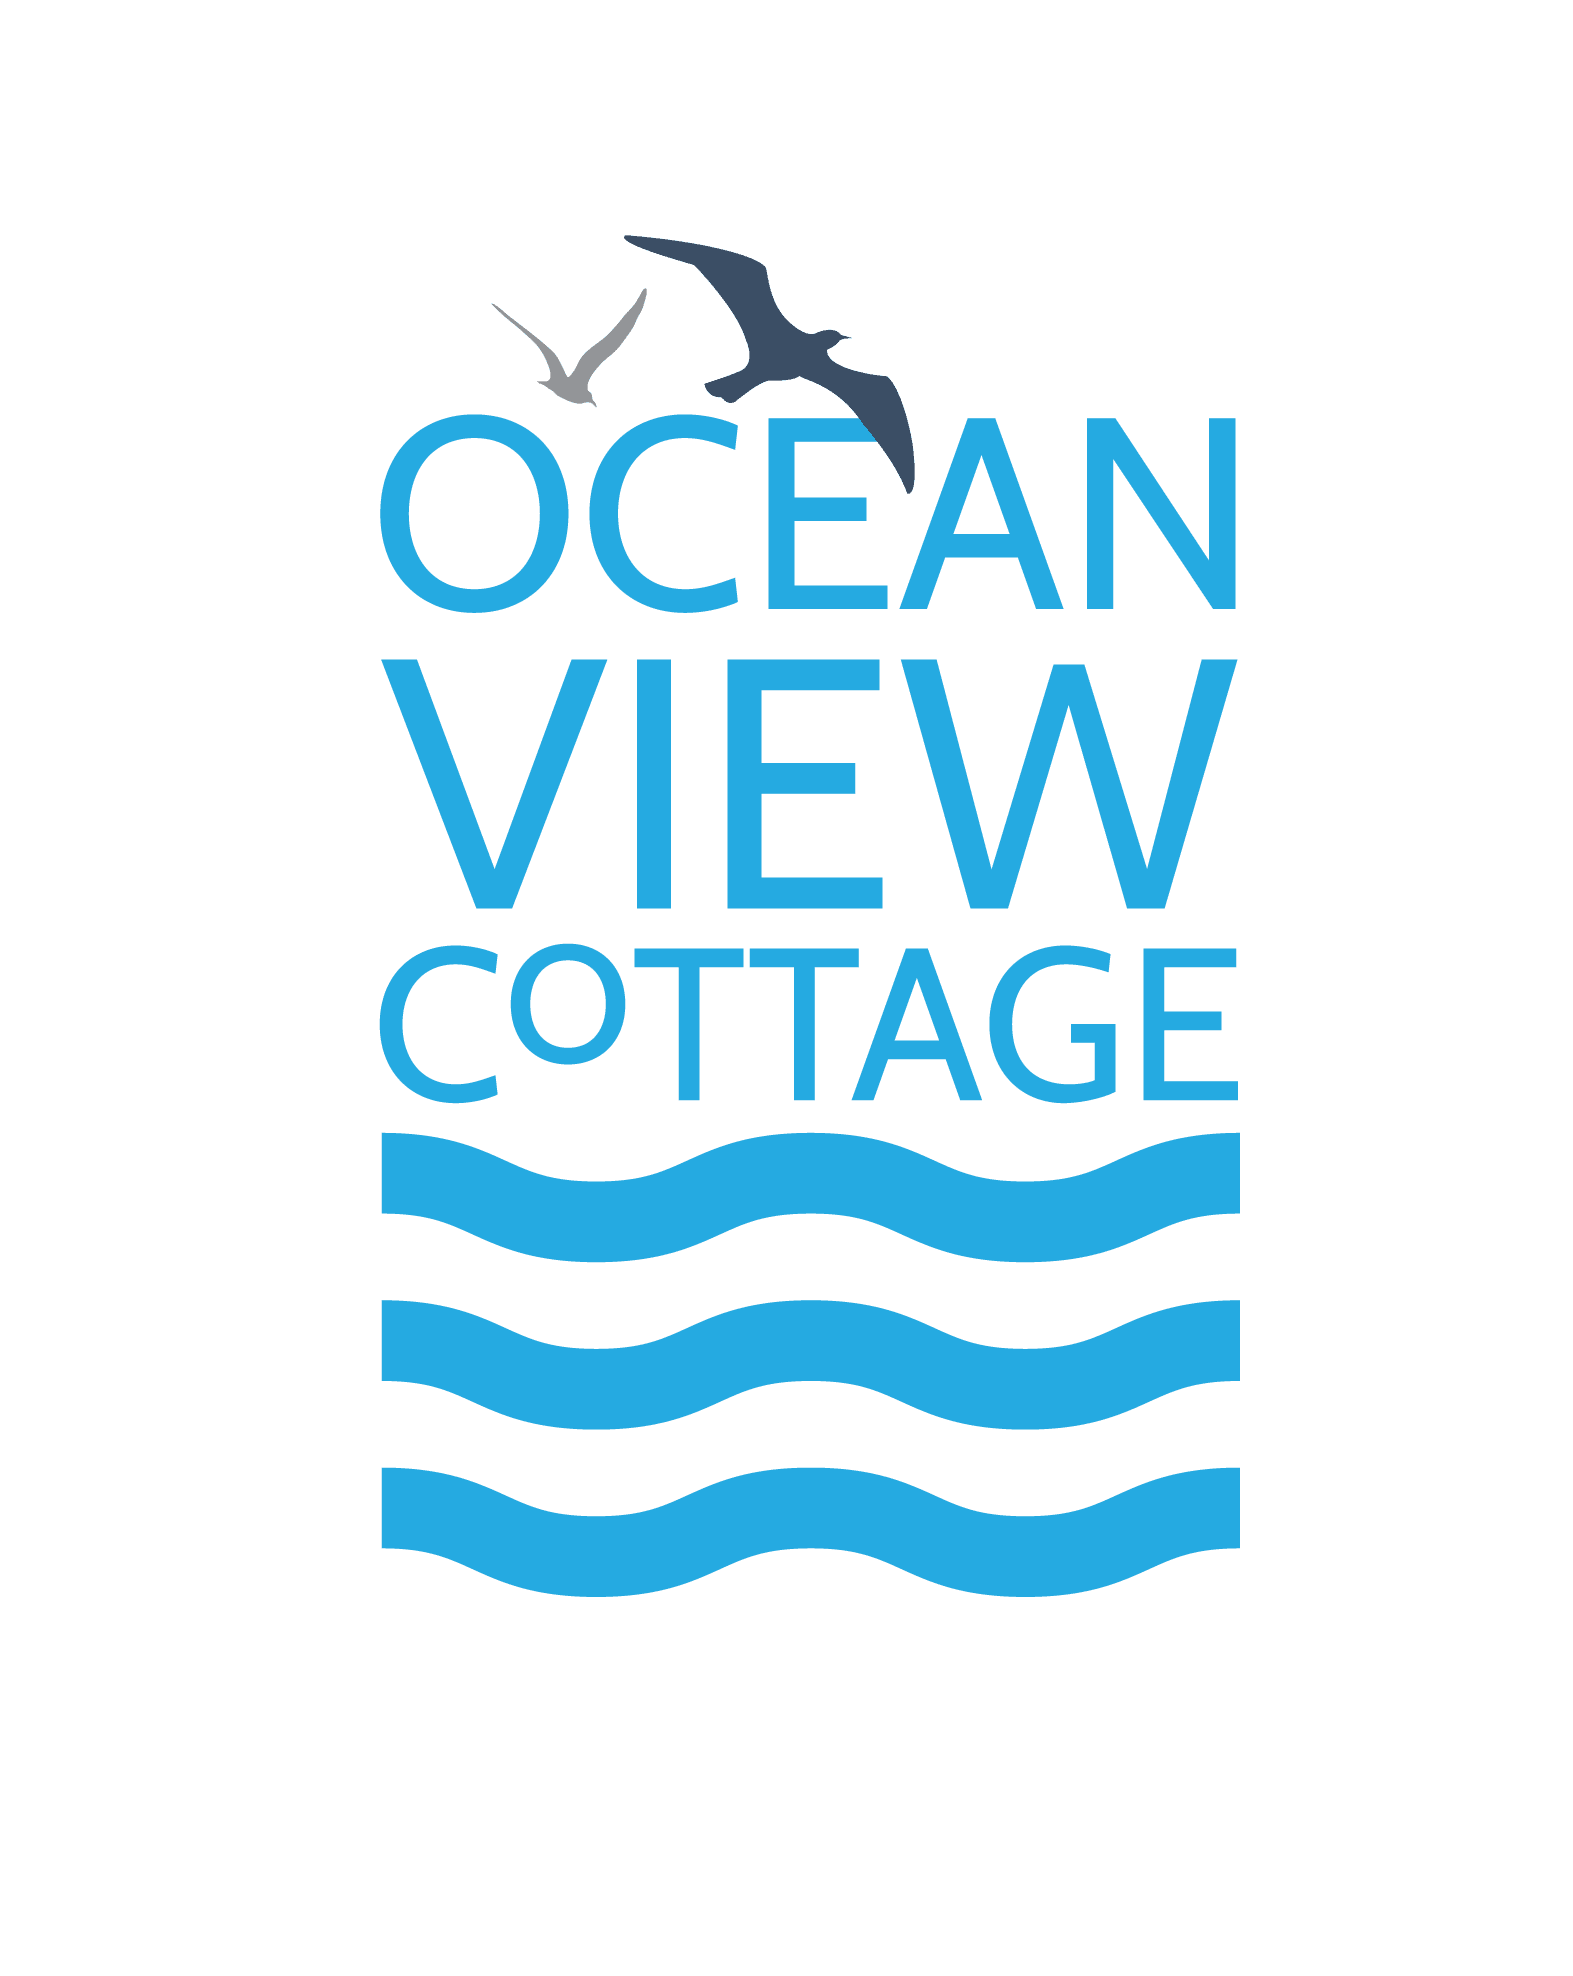 Ocean View Cottage